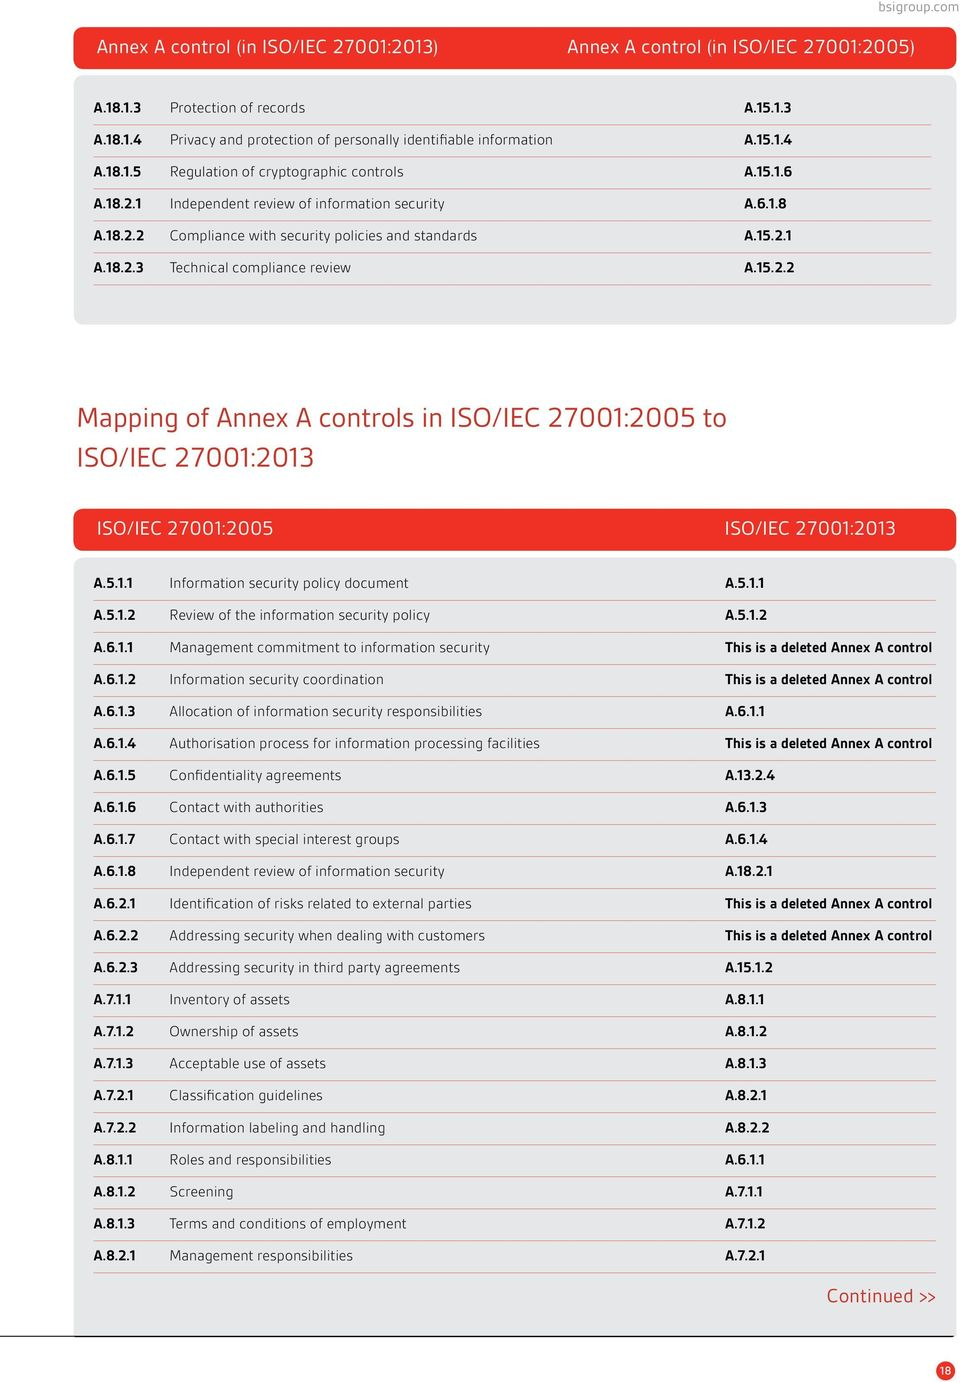 15.2.2 Mapping of Annex A controls in ISO/IEC 27001:2005 to ISO/IEC 27001:2013 ISO/IEC 27001:2005 ISO/IEC 27001:2013 A.5.1.1 Information security policy document A.5.1.1 A.5.1.2 Review of the information security policy A.